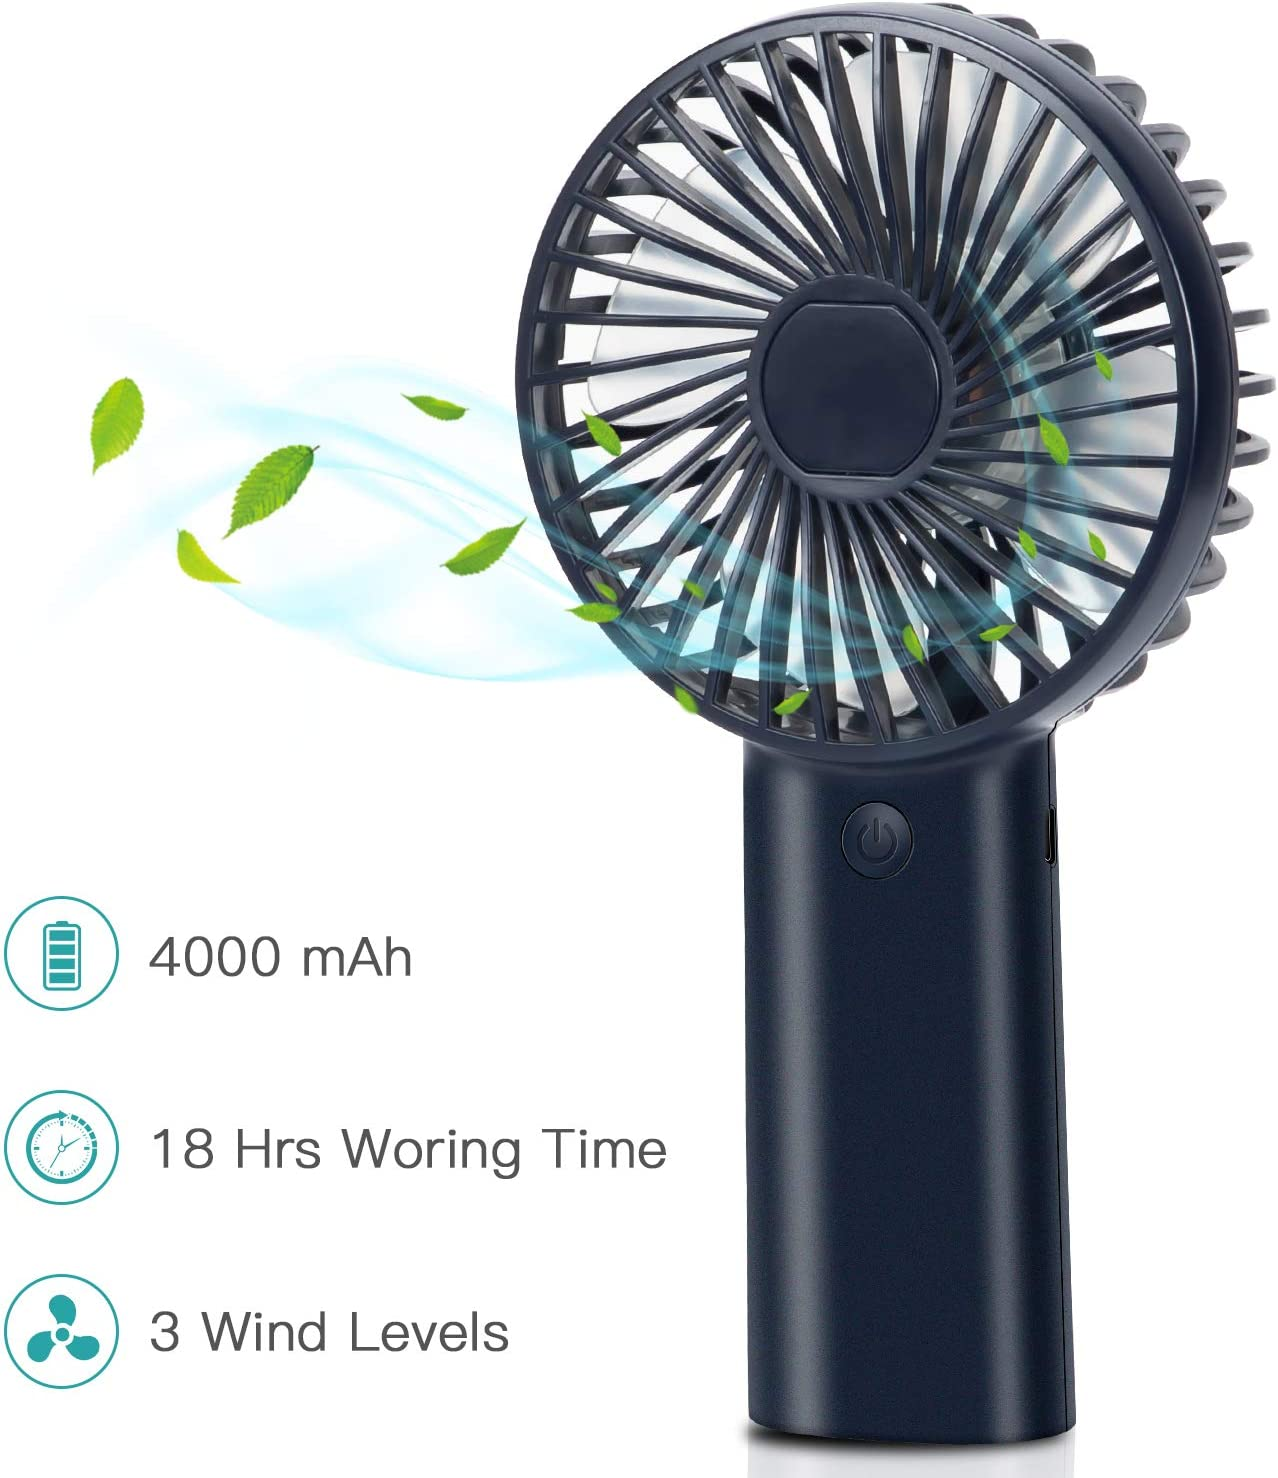 Portable Personal Fan, Mini Hand Held Fan, Desktop Handheld Fan, USB Rechargeable Battery Operated Fan, 4000mAh, 3 Speed Settings, Quick Charging, Strong Wind Fan for Trip, Home, Office Royal